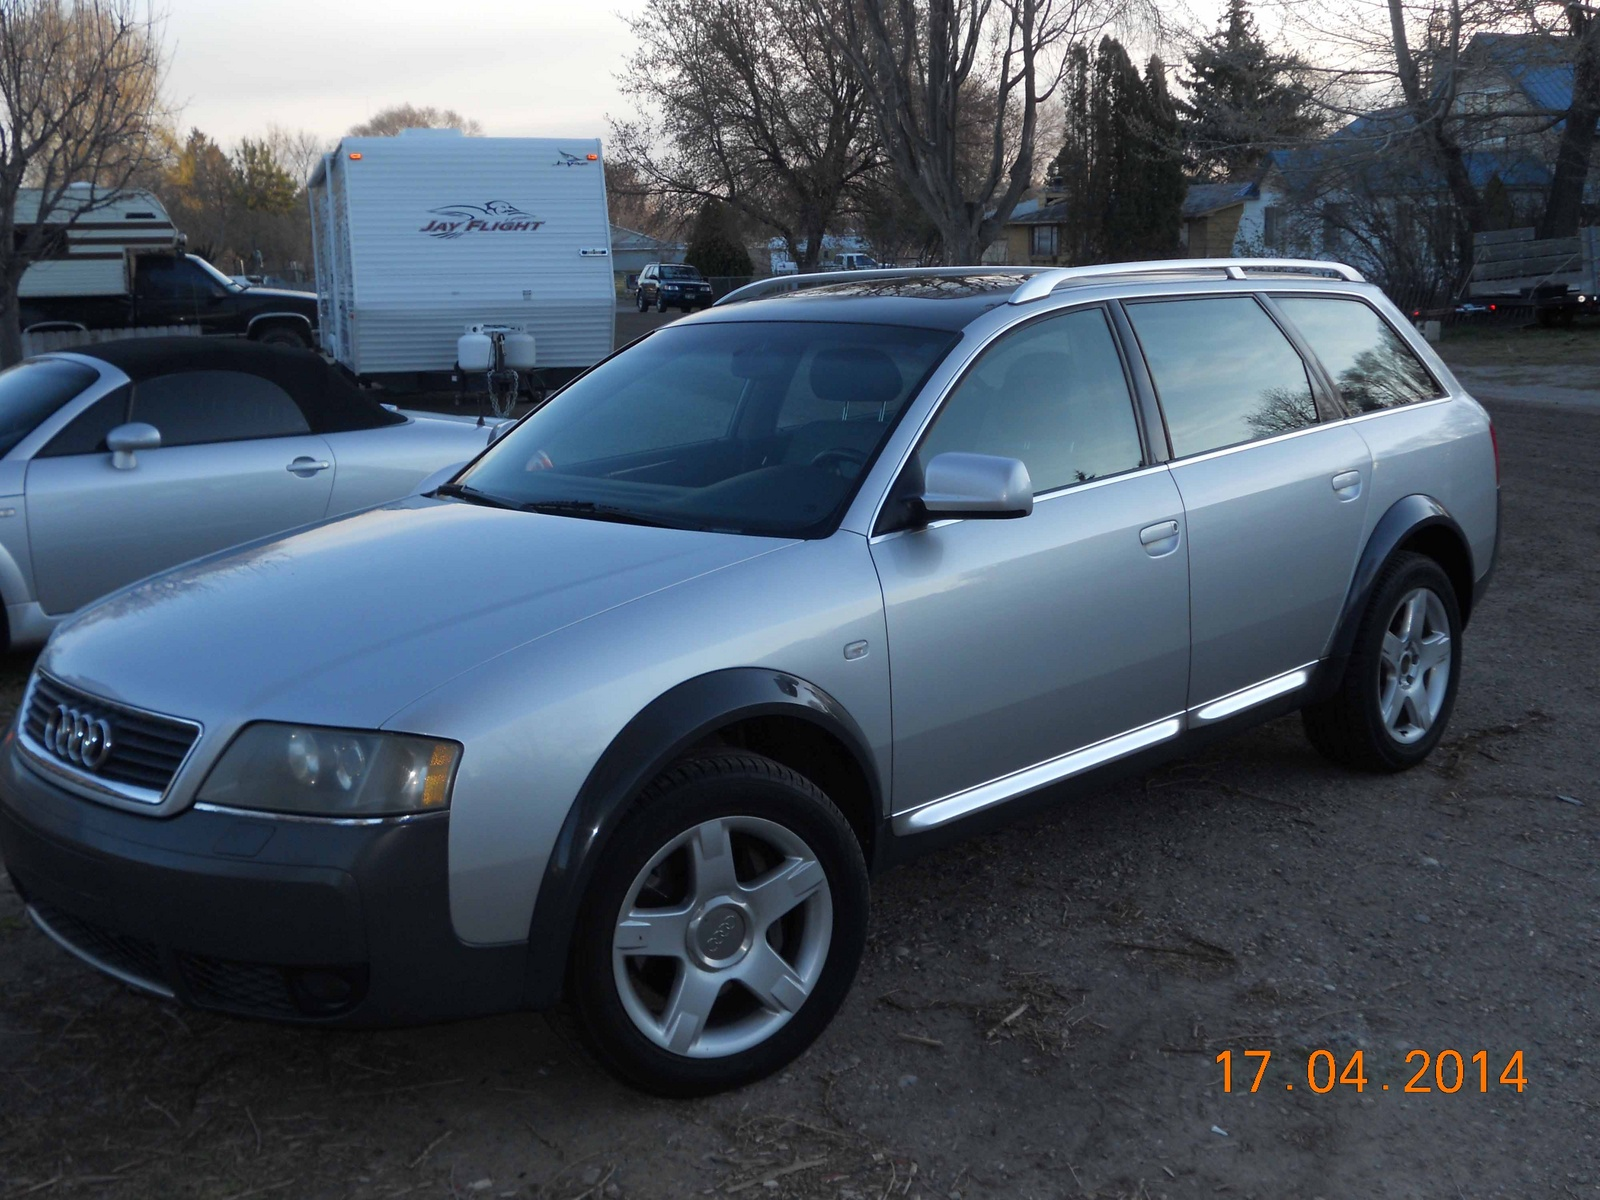 edmunds 2002 audi allroad quattro consumer reviews autos. Black Bedroom Furniture Sets. Home Design Ideas